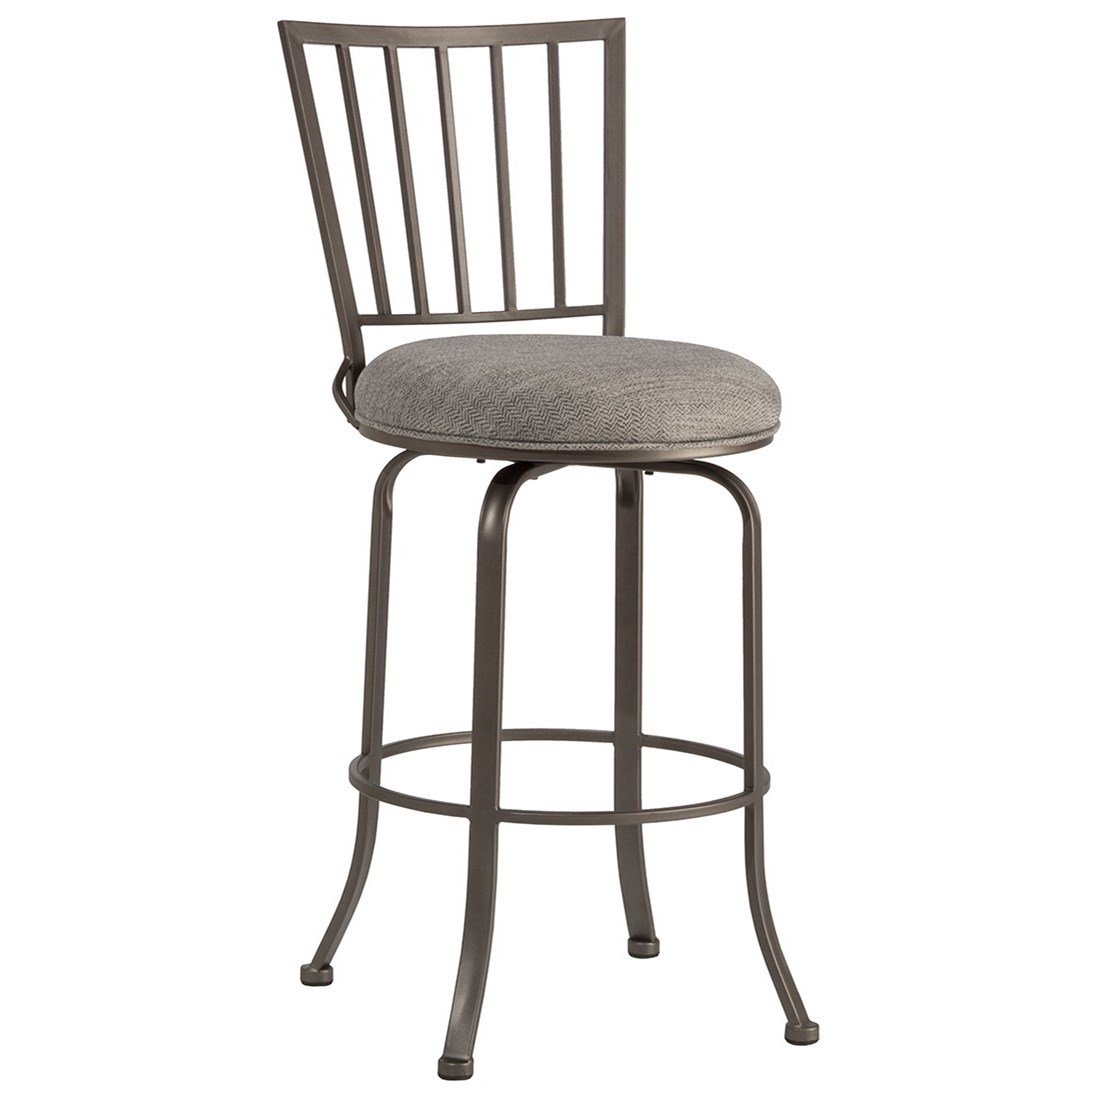 Lynx Swivel Bar Stool by Hillsdale at Darvin Furniture